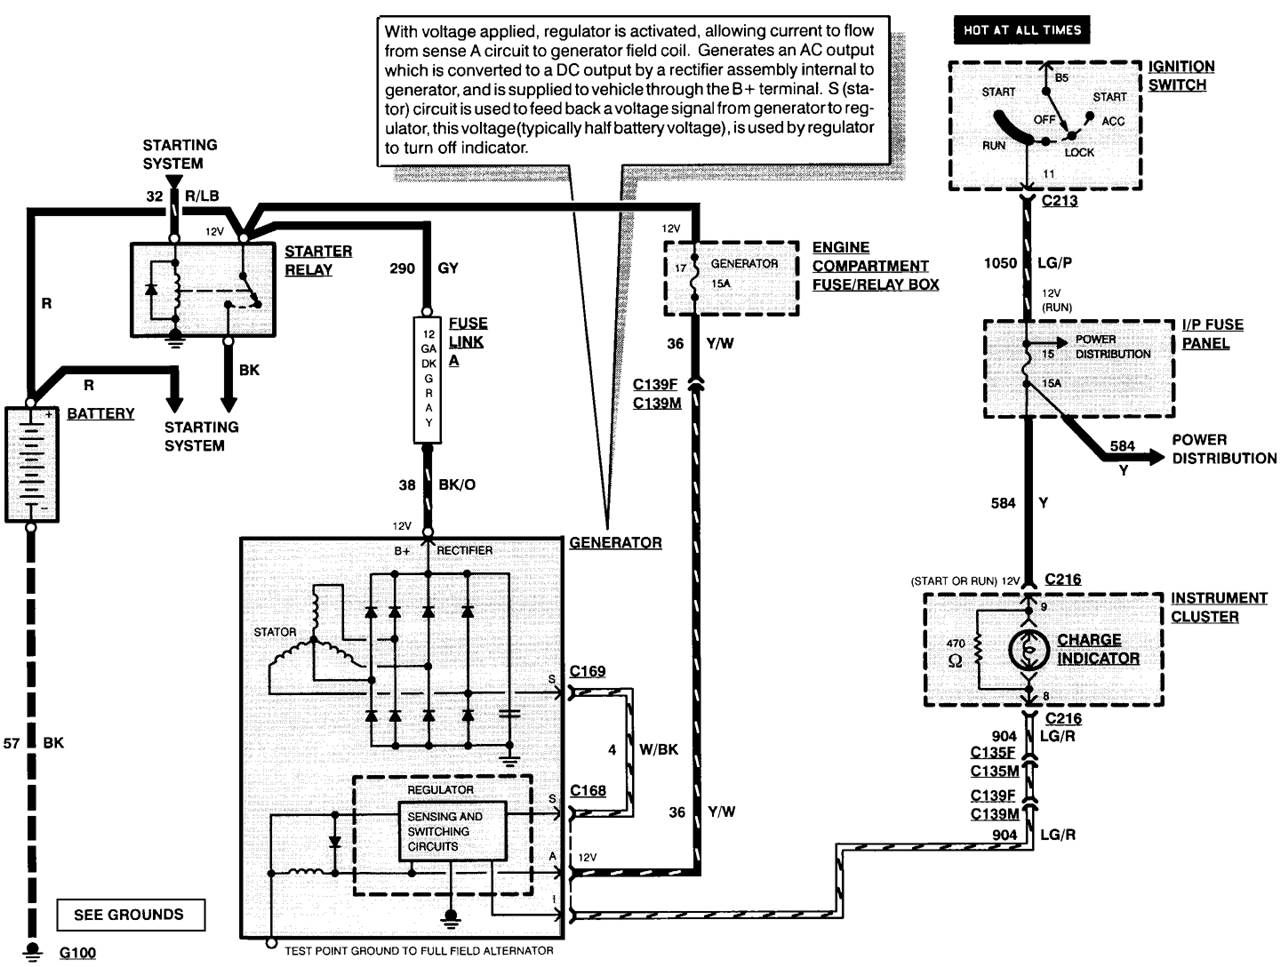 gm power steering box diagram  gm  free engine image for